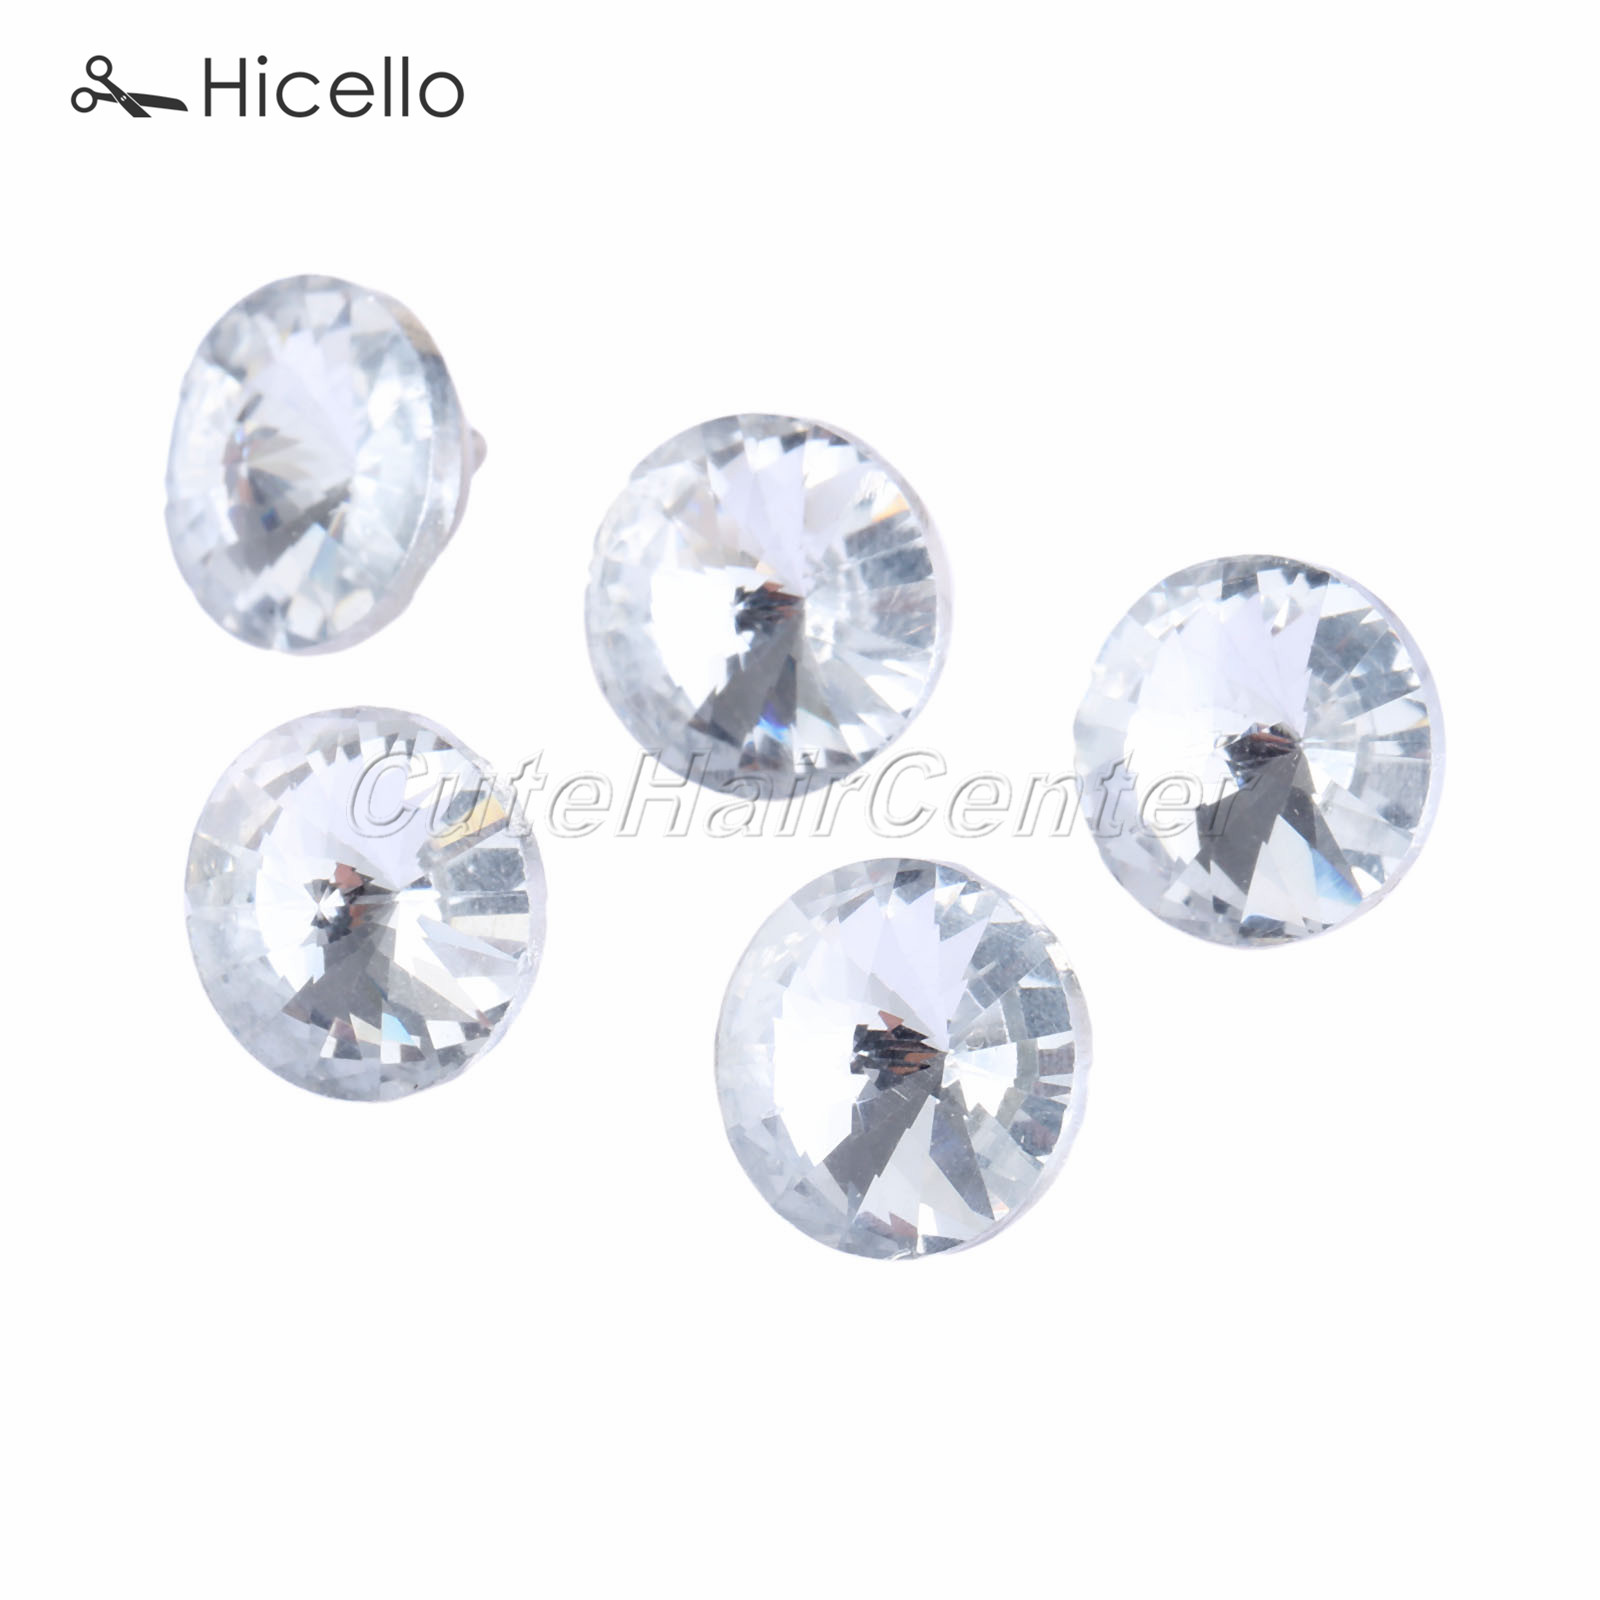 10pcs Crystal Upholstery Nails Button 14mm Glass Diamond Tacks Pins Knot Sewing Sofa Furniture Decoration Hicello